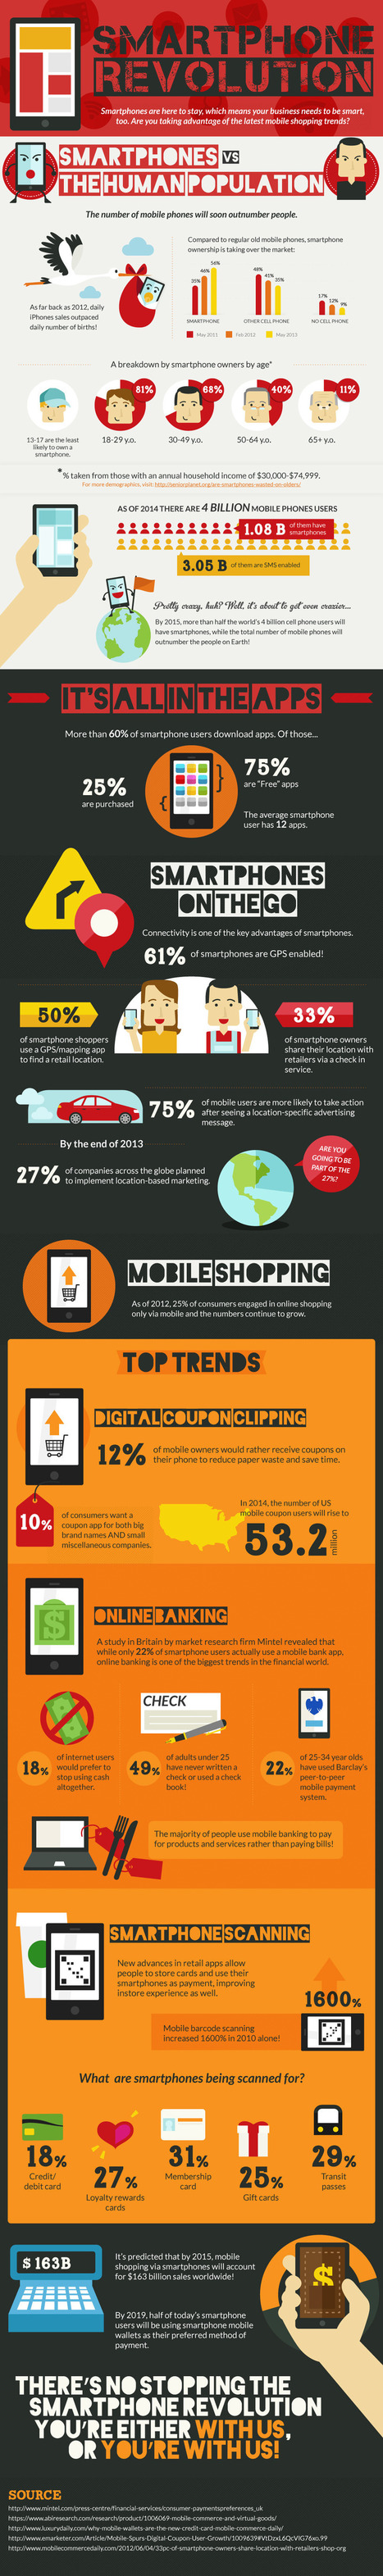 Smartphones are Changing the Marketing Landscape | Etudes sur l'e-commerce - Research about e-business | Scoop.it